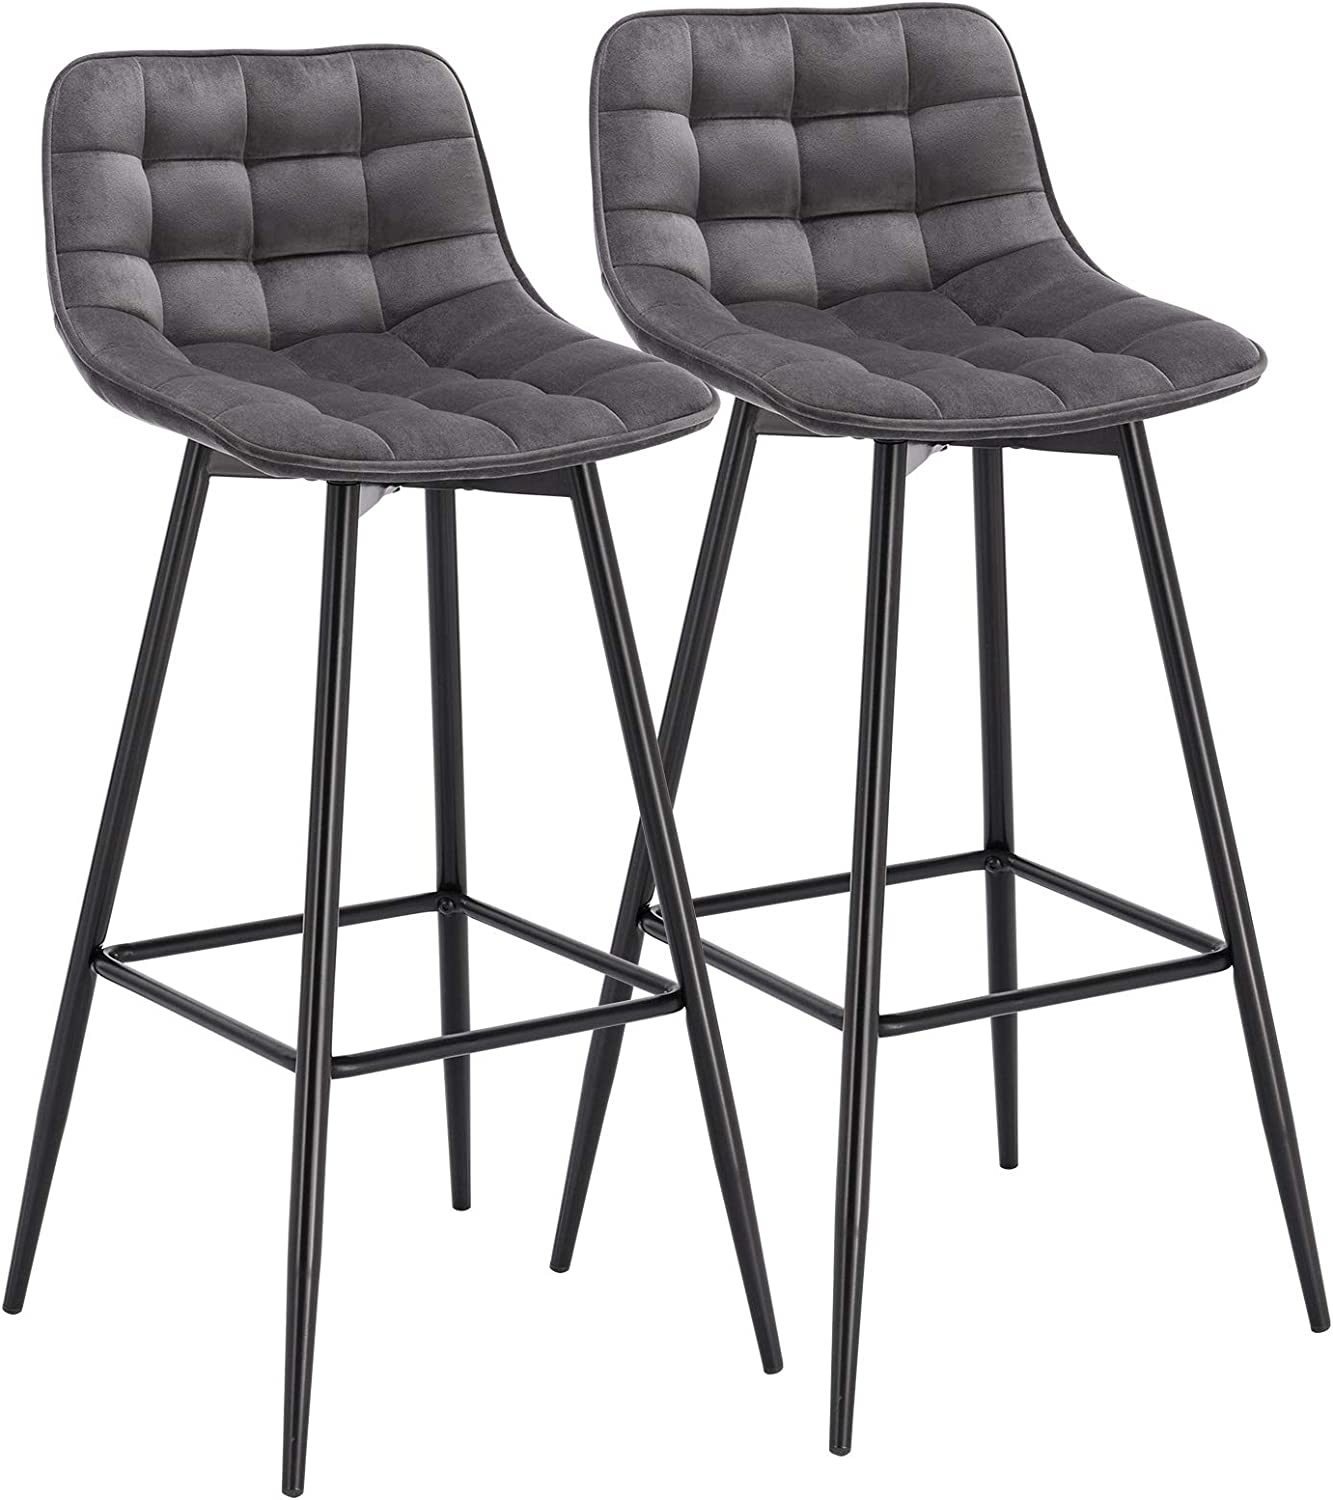 HOMCOM Set Of 2 Bar Stools Vintage PU Leather Tub Seats Padded Comfortable Steel Frame Footrest Quilted Home Business Bar Cafe Kitchen Chair Stylish Brown